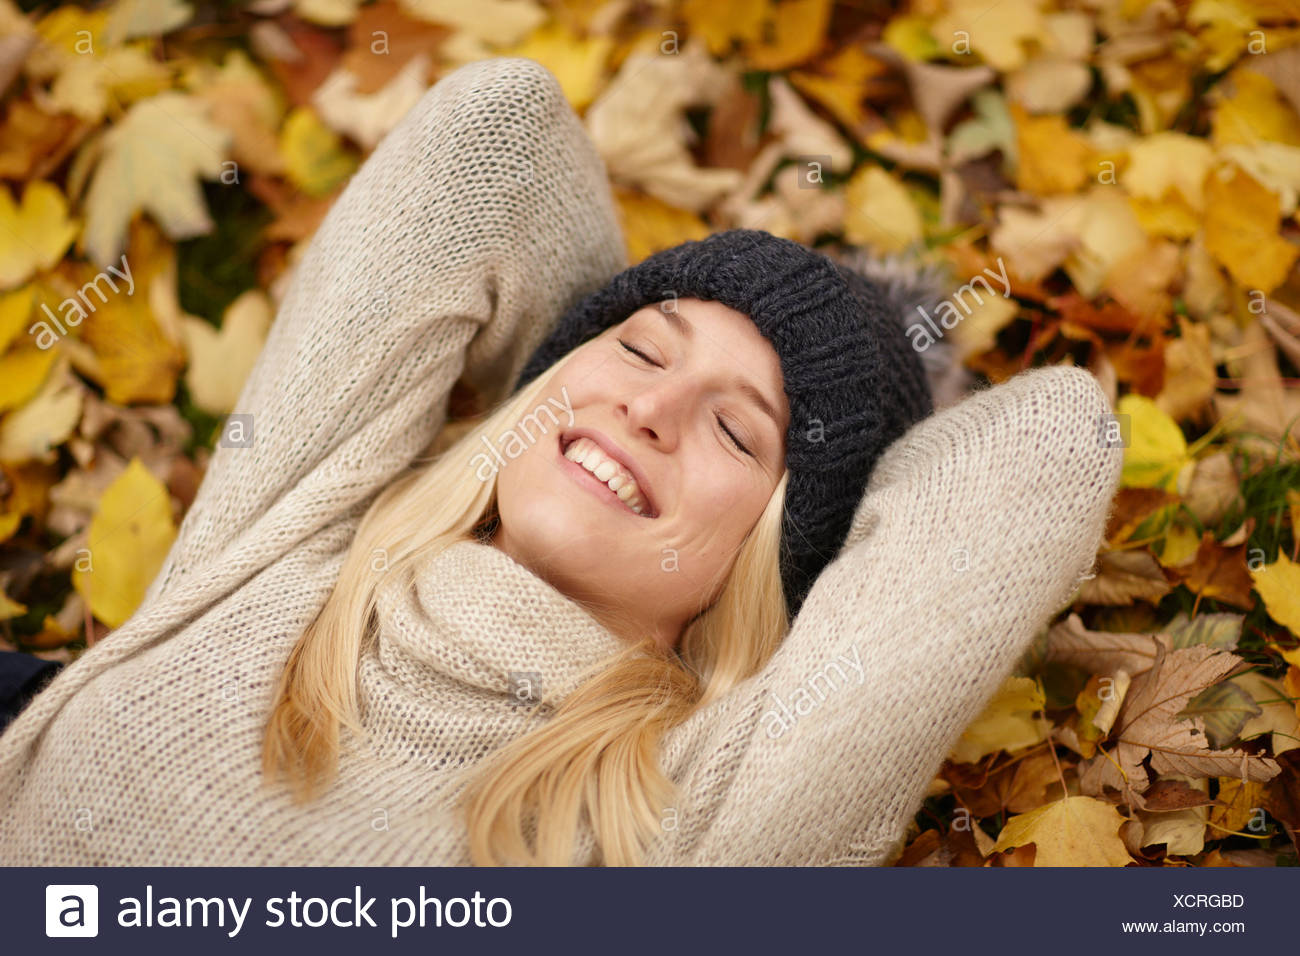 Woman laying in autumn leaves outdoors Stock Photo